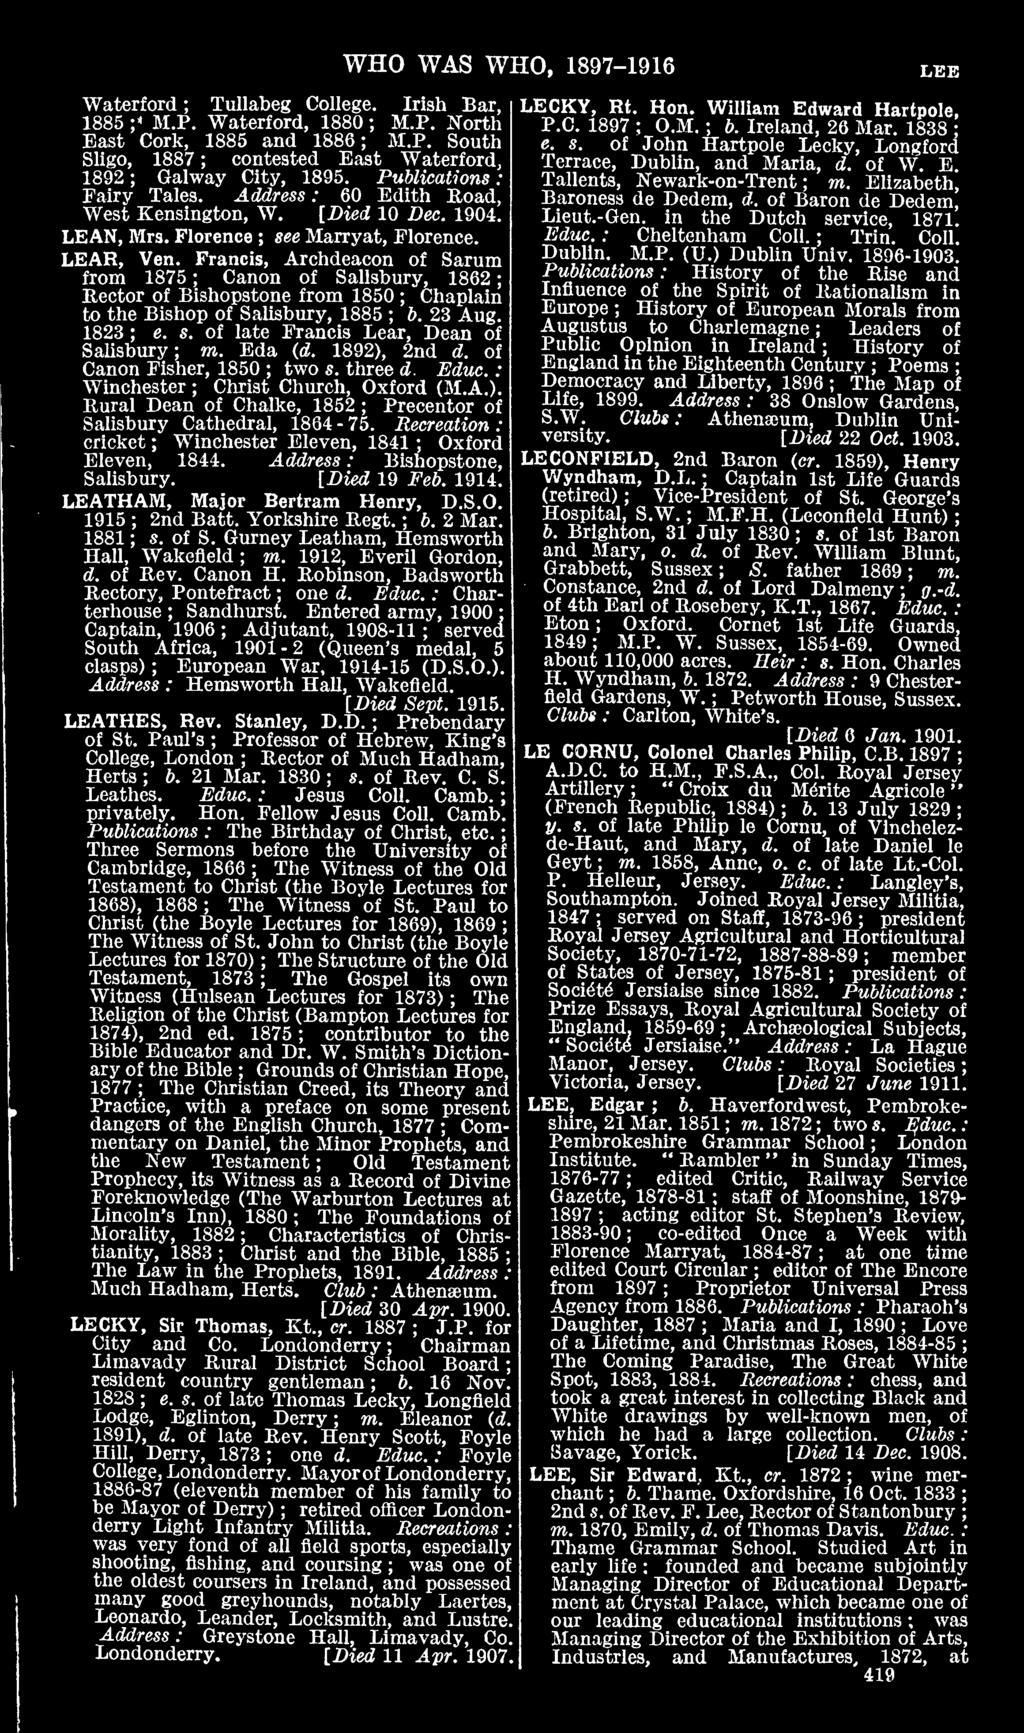 WHO WAS WHO, 1897-1916 LEE Waterford Tullabeg College. Irish Bar, 1885 M.P. Waterford. 1880 M.P. North East Cork, 1885 and 1886 M.P. South Sligo, 1887 contested East Waterford, 1892 Galway City, 1895.